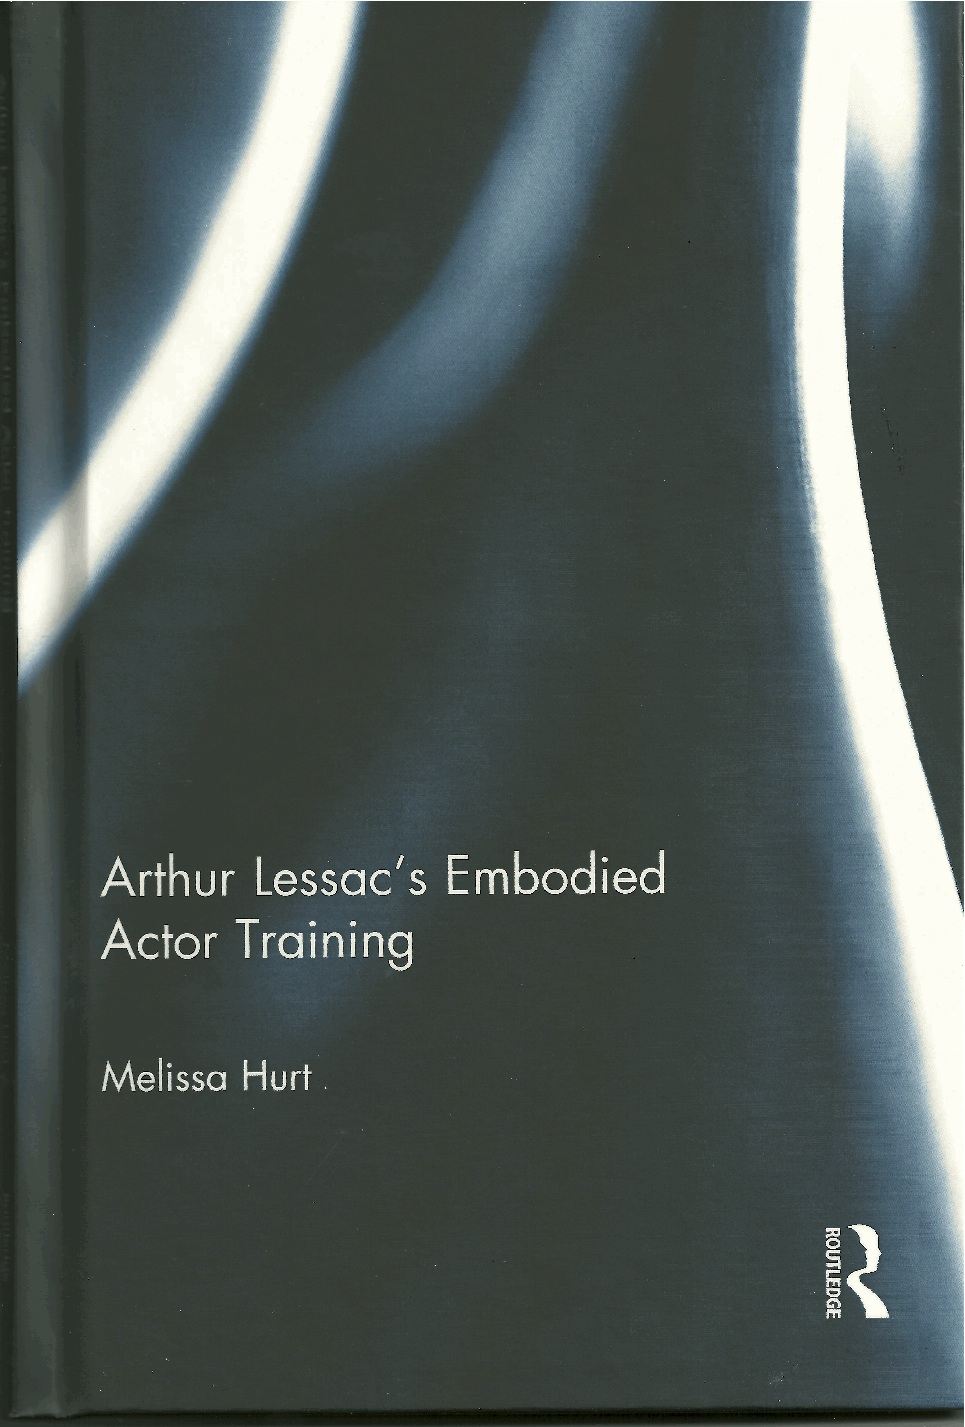 Arthur Lessac's Embodied Actor Training - This book situates the work of the renowned voice and movement trainer Arthur Lessac in the context of contemporary actor training as a whole.Melissa Hurt uses Maurice Merleau-Ponty's theories of embodiment to frame Lessac's approach in terms of Embodied Acting, a key subject in contemporary performance. In doing so, she explains how the actor can come to experience both technique and expression as a subjective whole, through meditation and spatial attunement.As well as feeding this somatic approach into a wider discussion of embodiment, the author provides concrete examples of how the practice can be put into effect, and studied at university level.